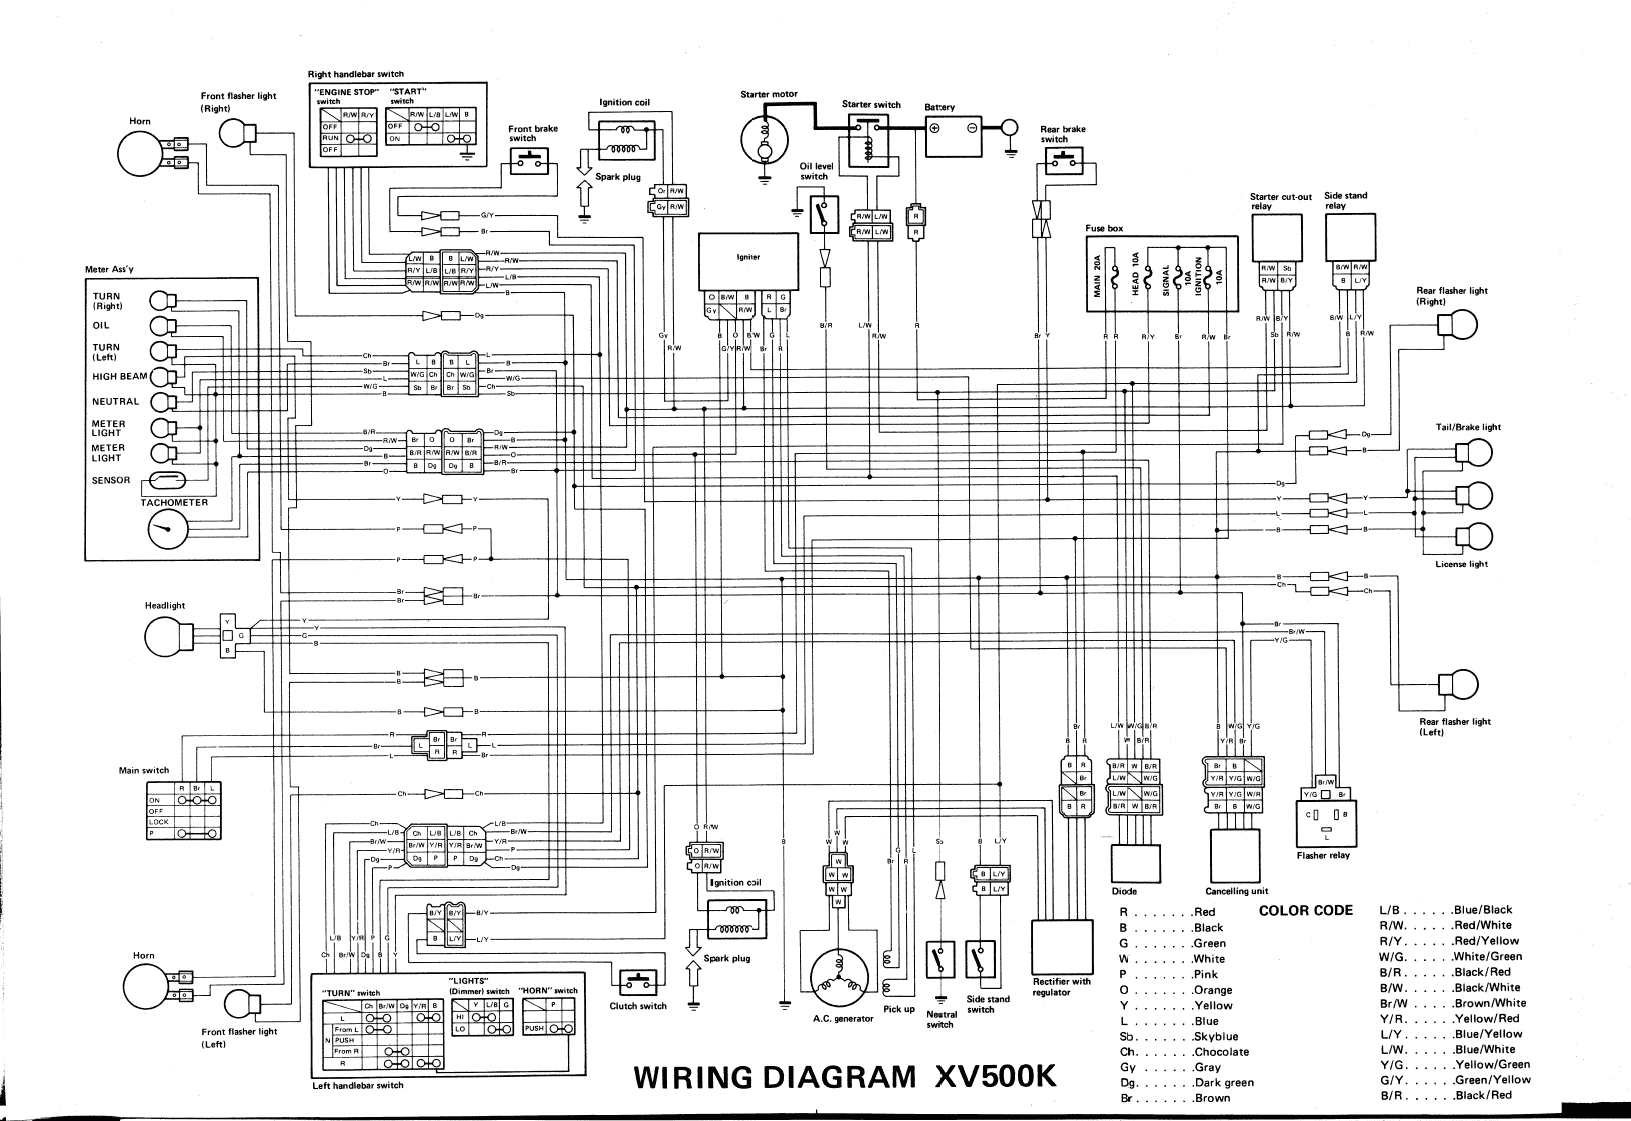 xv500k virago ignition wiring yamaha 250 wiring diagram wiring diagram byblank yamaha xv250 virago wiring diagram at n-0.co